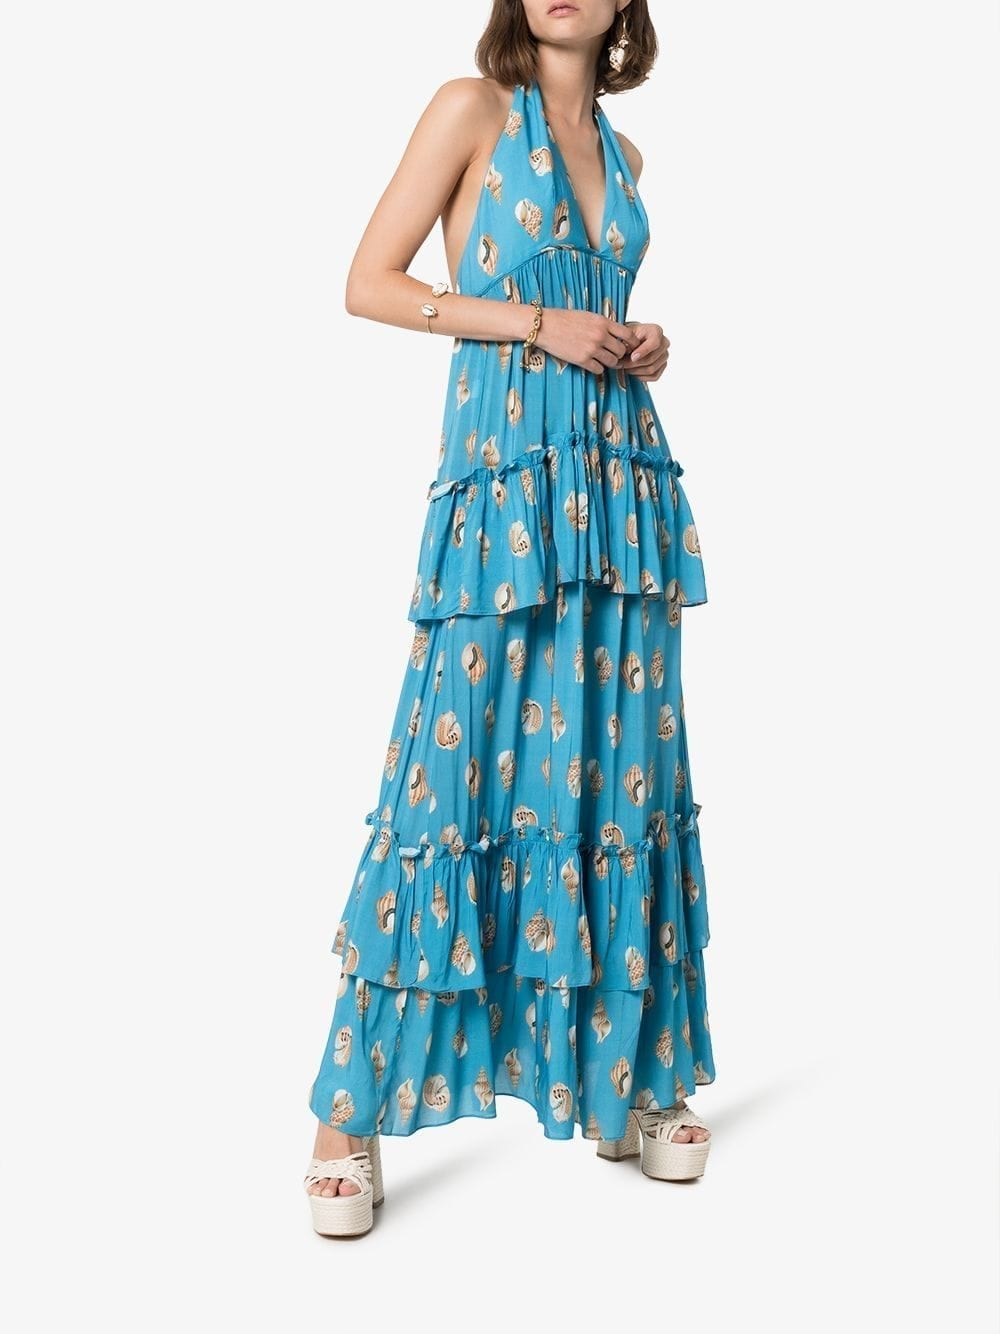 448df2a24d ADRIANA DEGREAS Conchiglie Tiered Halterneck Maxi Blue Dress - We ...